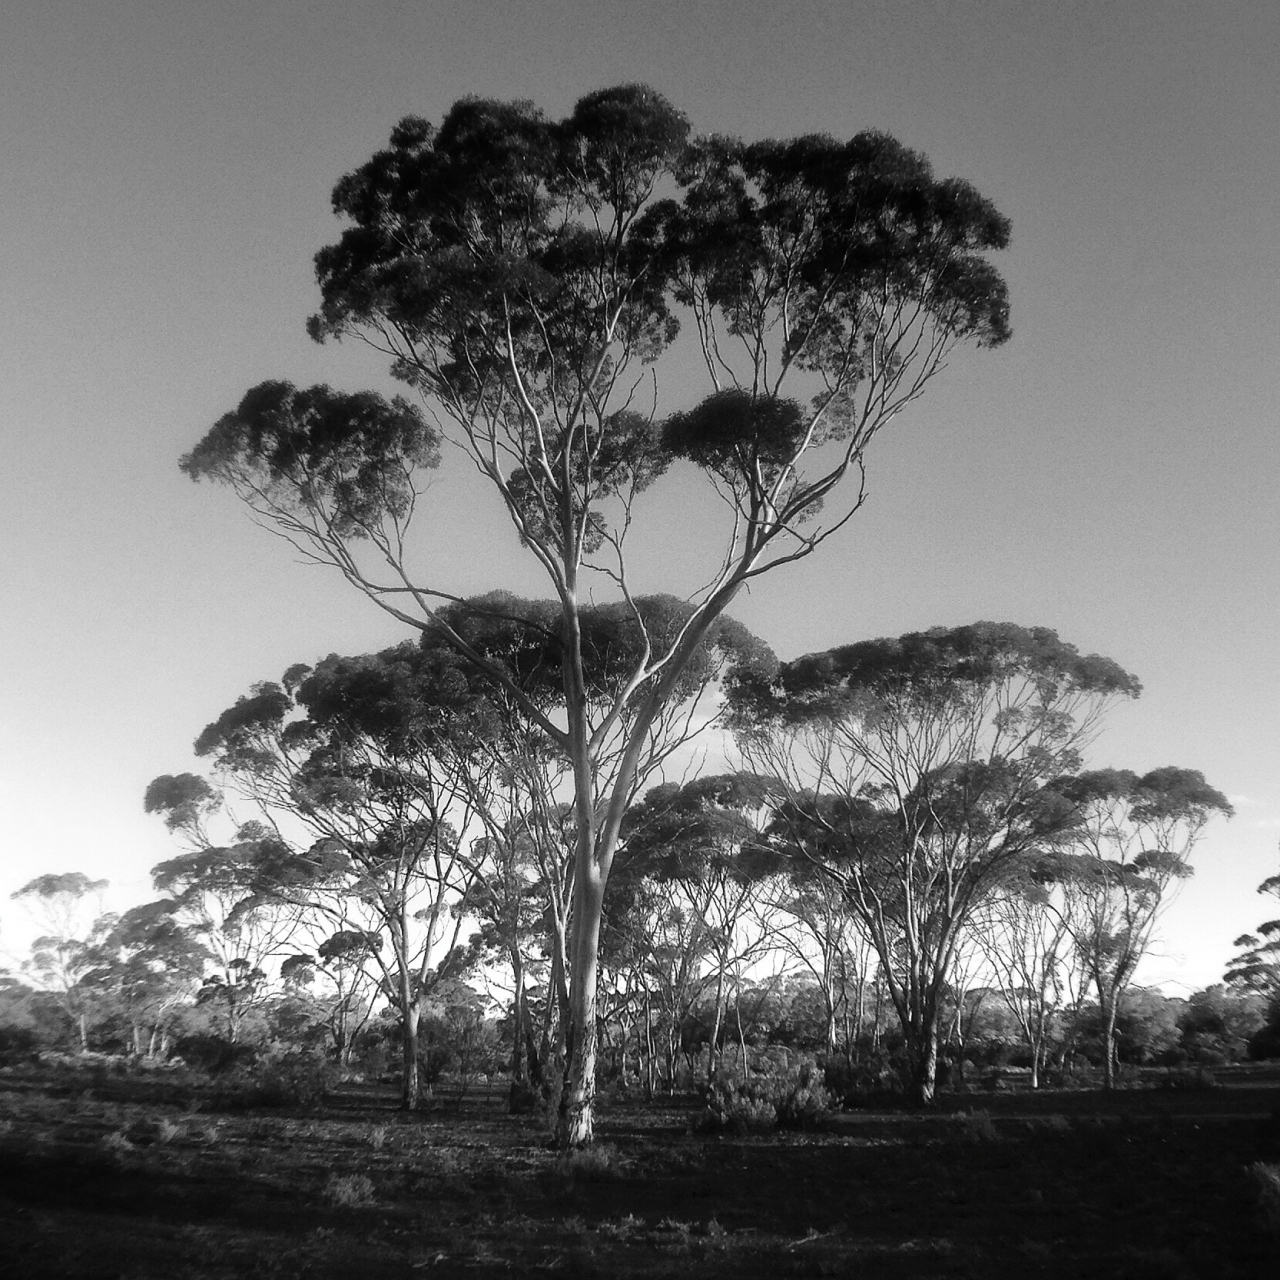 Just off the Great Eastern Highway, around 650km east of Perth.